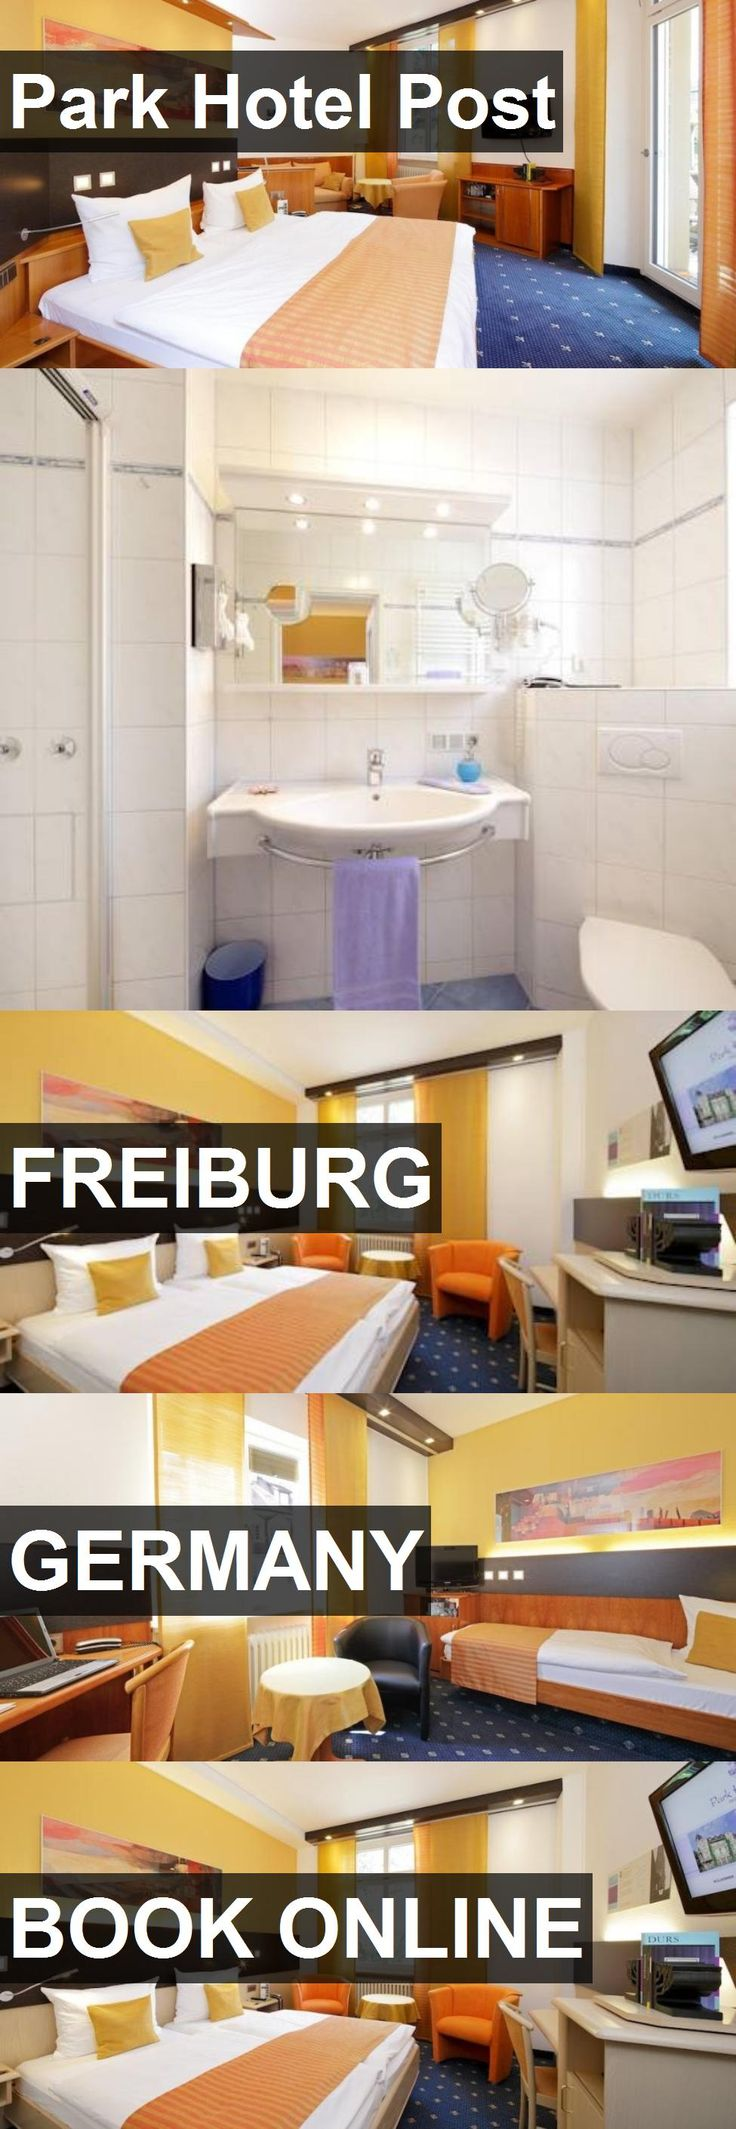 Park Hotel Post in Freiburg, Germany. For more information, photos, reviews and best prices please follow the link. #Germany #Freiburg #travel #vacation #hotel